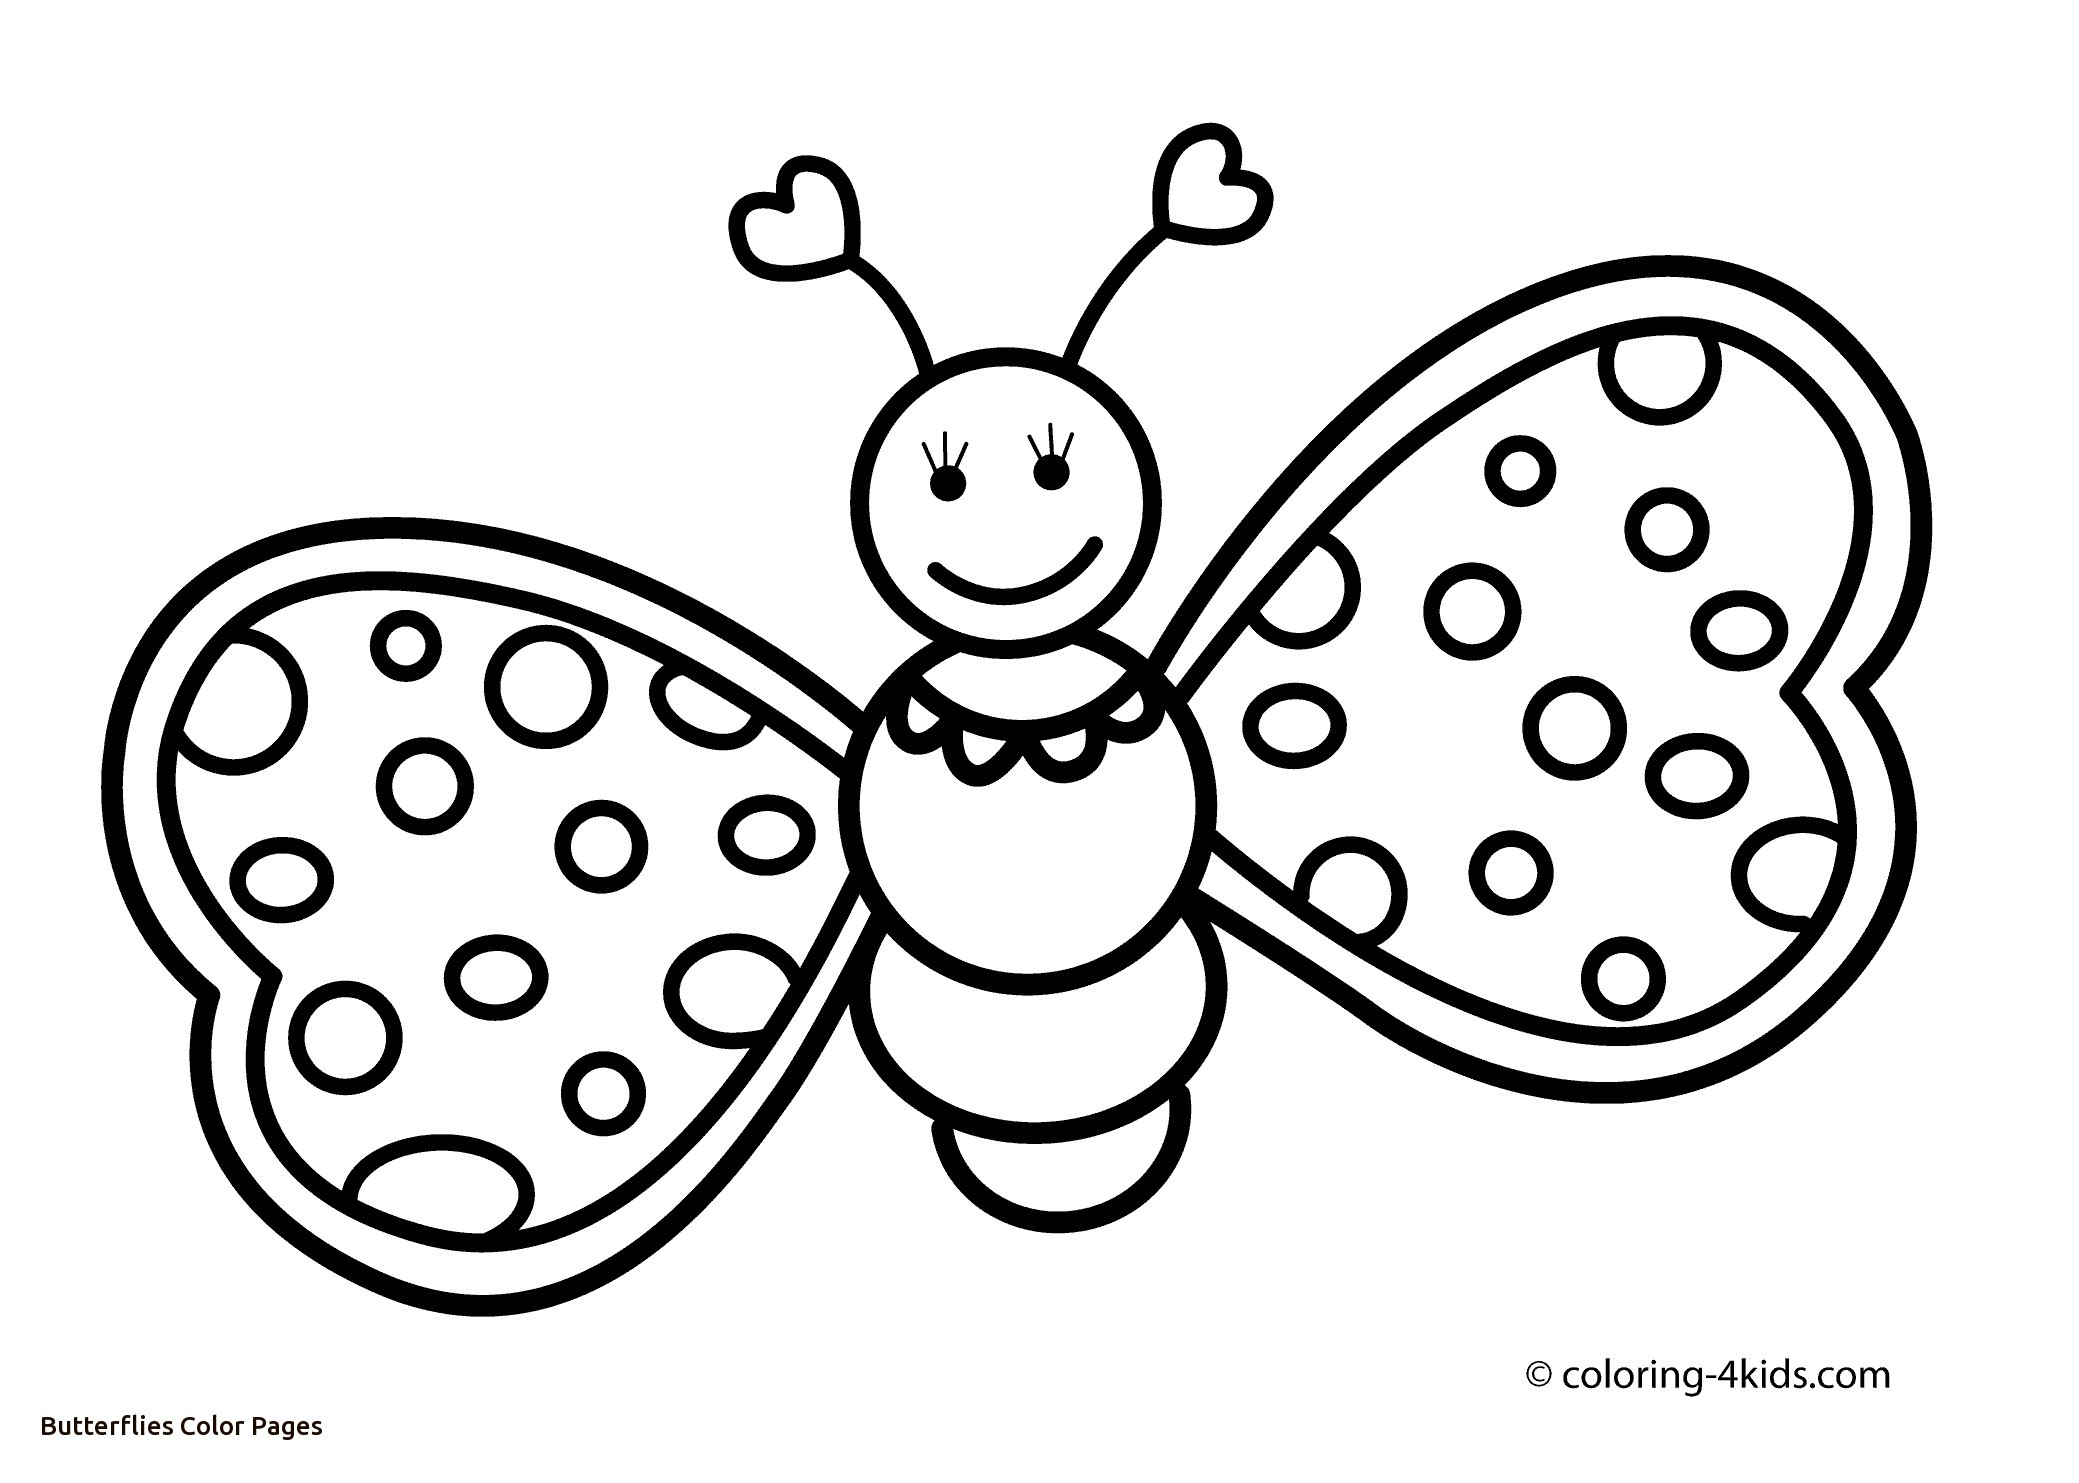 2079x1483 Powerful Picture Of A Butterfly To Color Pages Free Printable